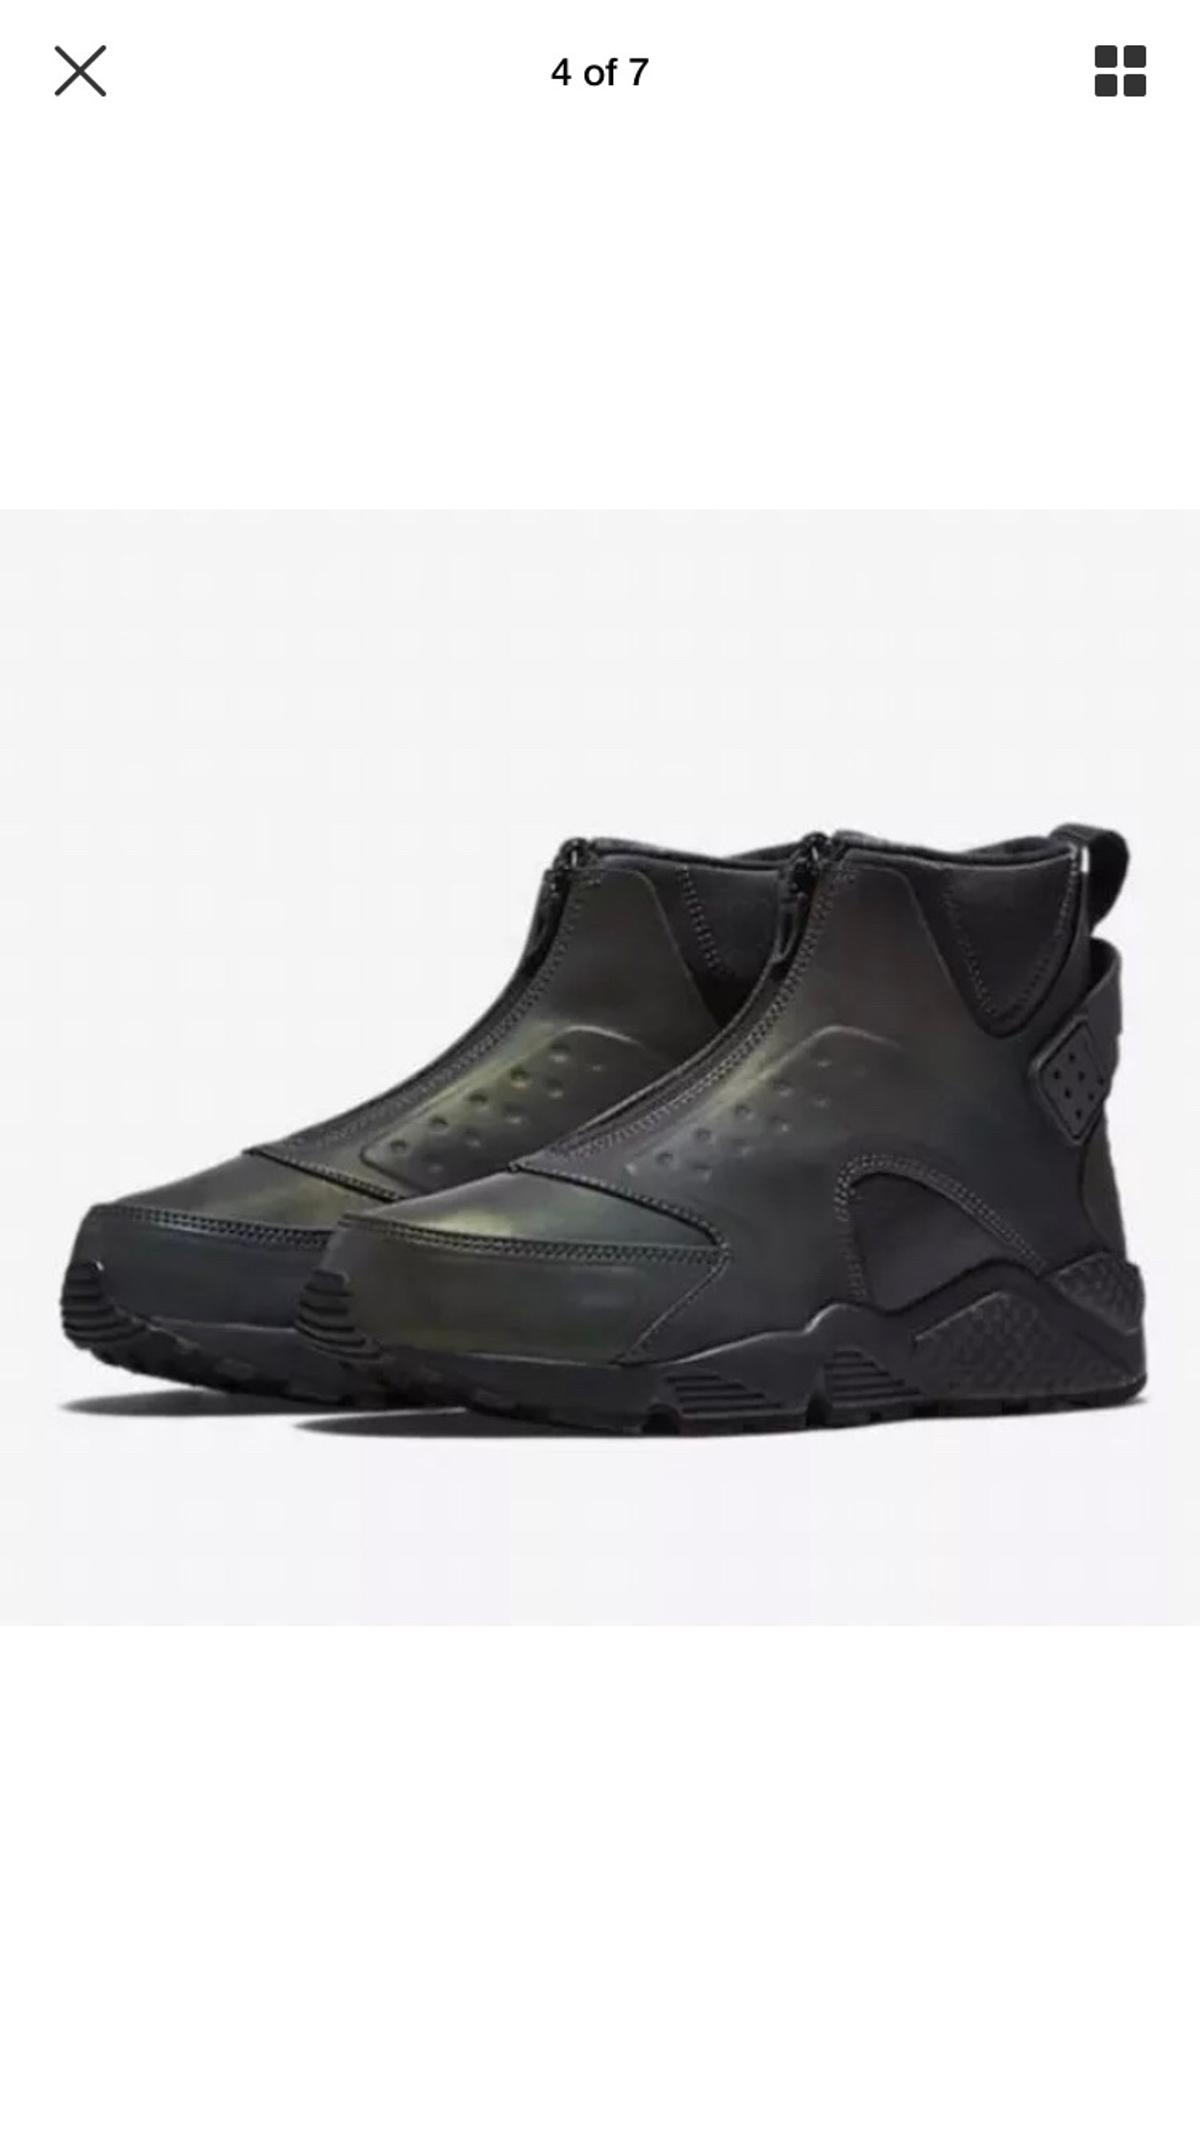 save off c377a cc129 Nike Air Huarache Mid Iridescent Size 6 in WC1H London for ...